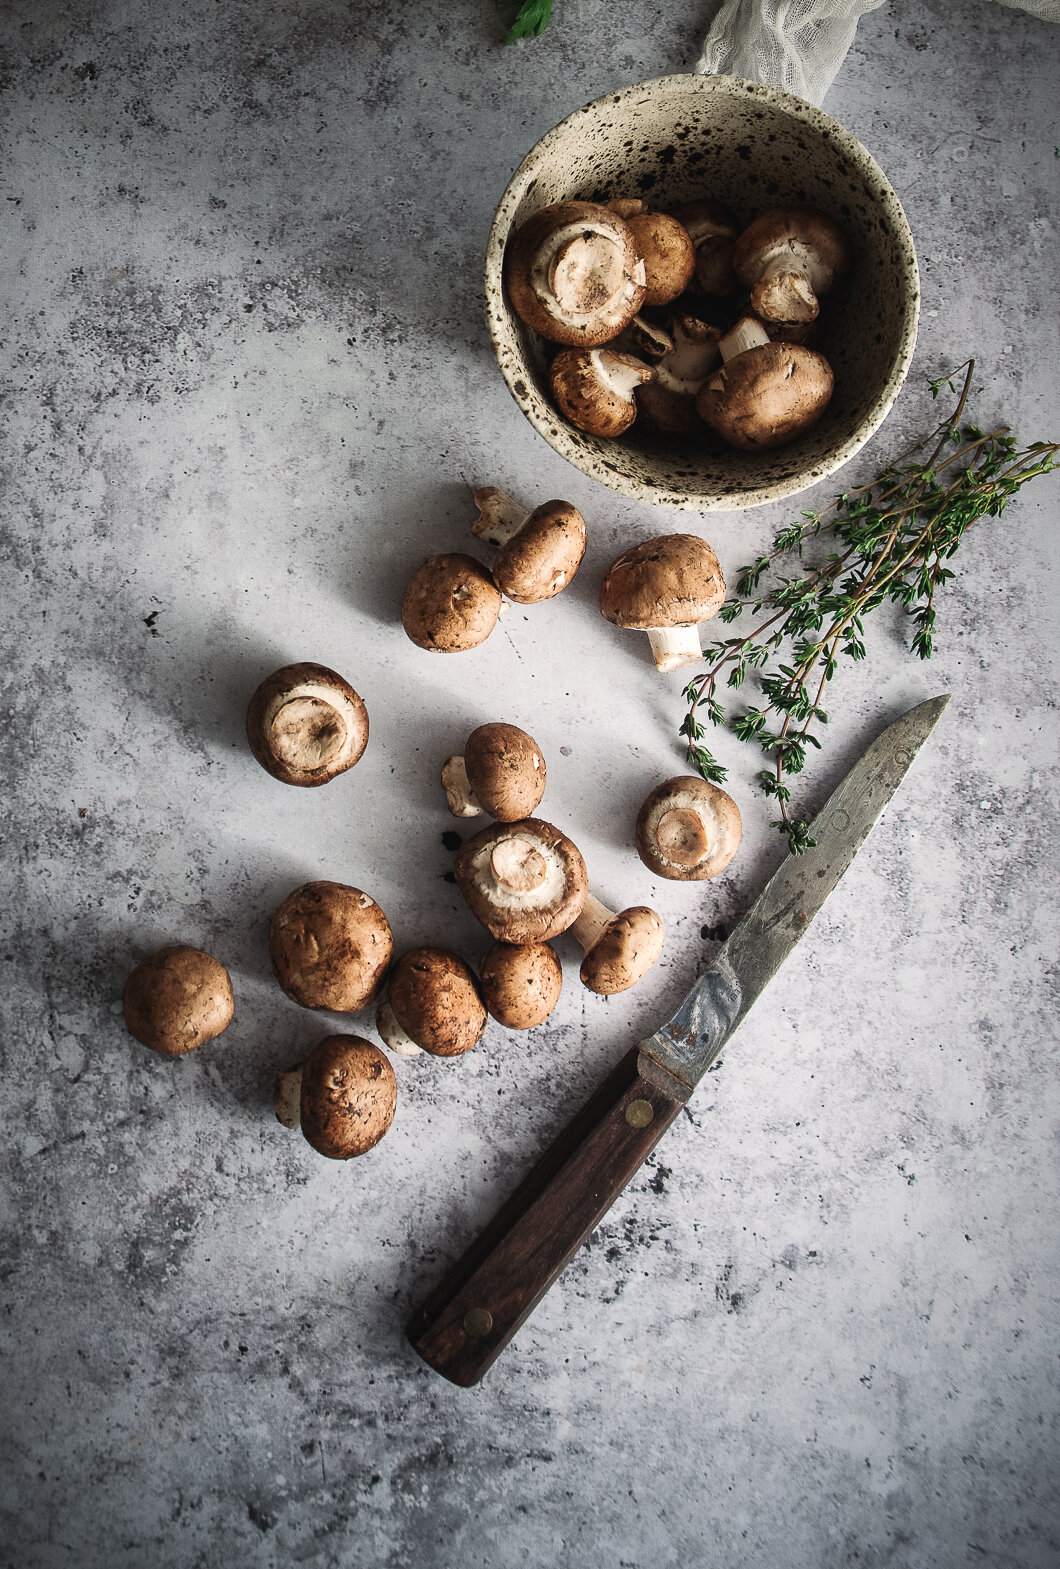 Mushrooms with knife, thyme and bowl